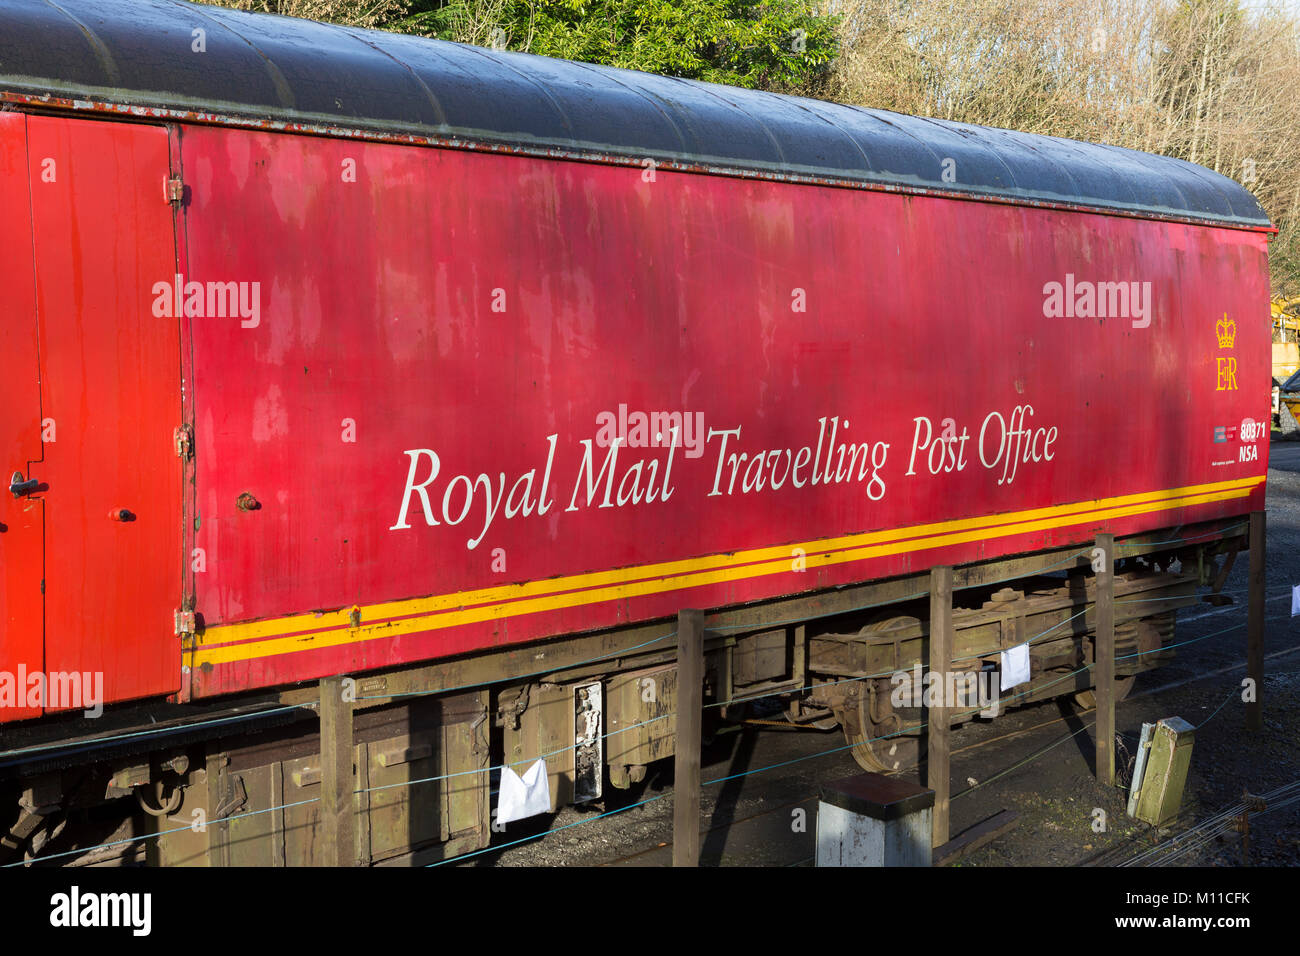 Royal Mail Travelling Post Office wagon at the Gwili Steam Railway attraction at Bronwydd Arms, Carmarthen, Carmarthenshire, Stock Photo